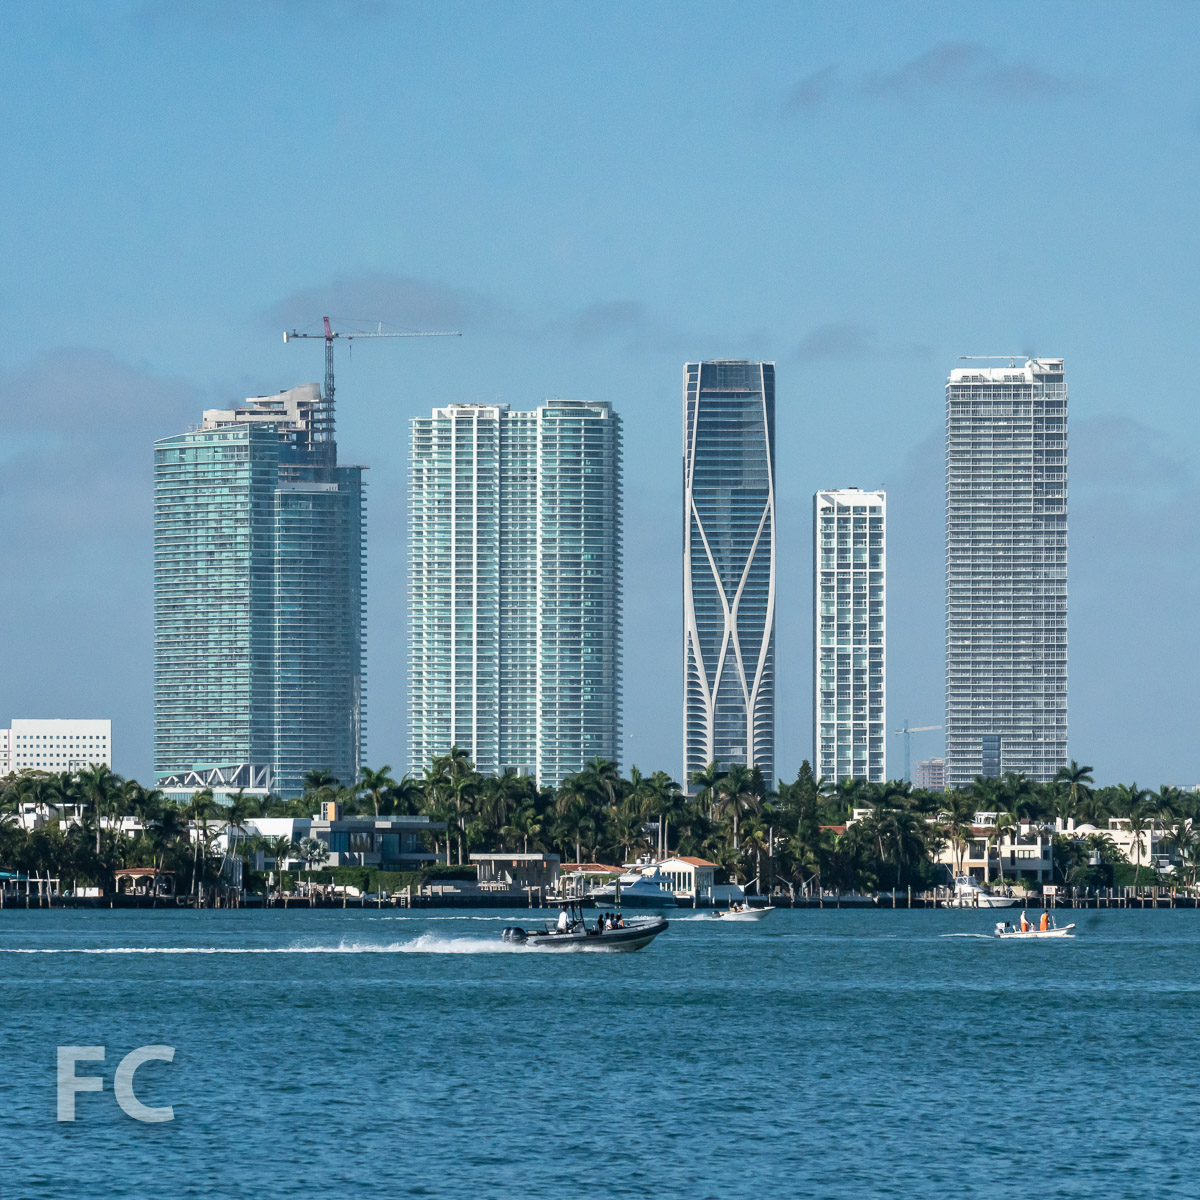 Biscayne Bay waterfront.